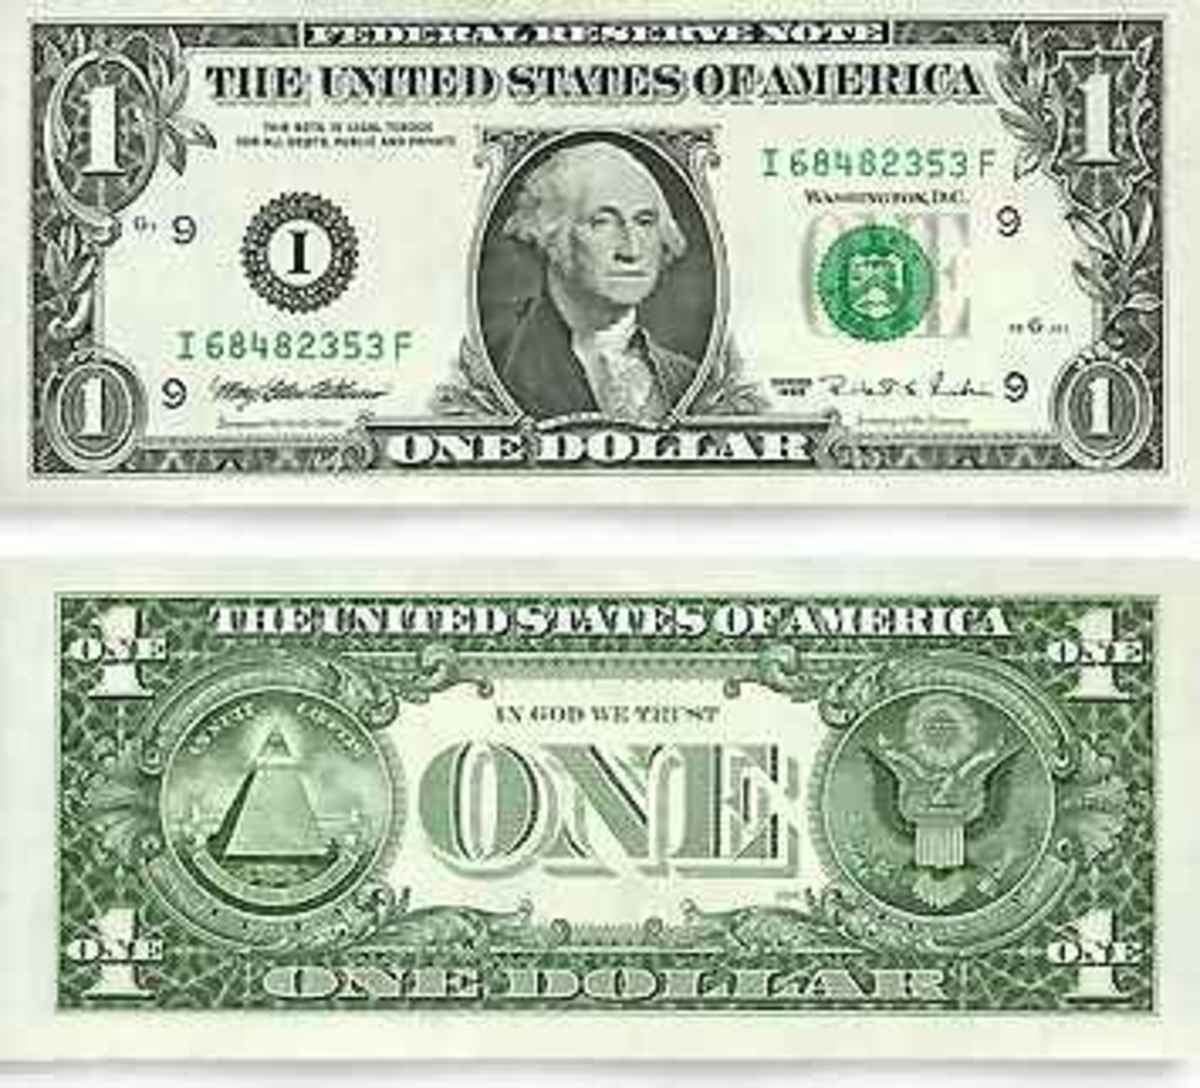 USD $1.00 bill Face and Back